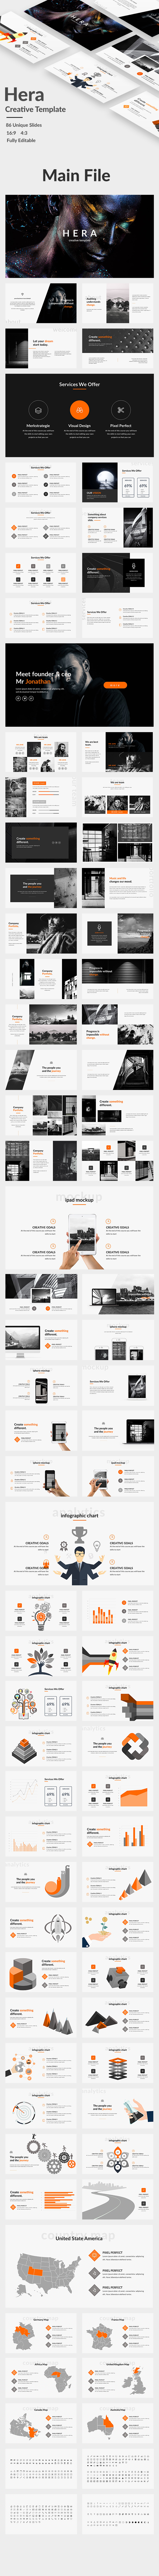 Hera Creative Powerpoint Template - Creative PowerPoint Templates